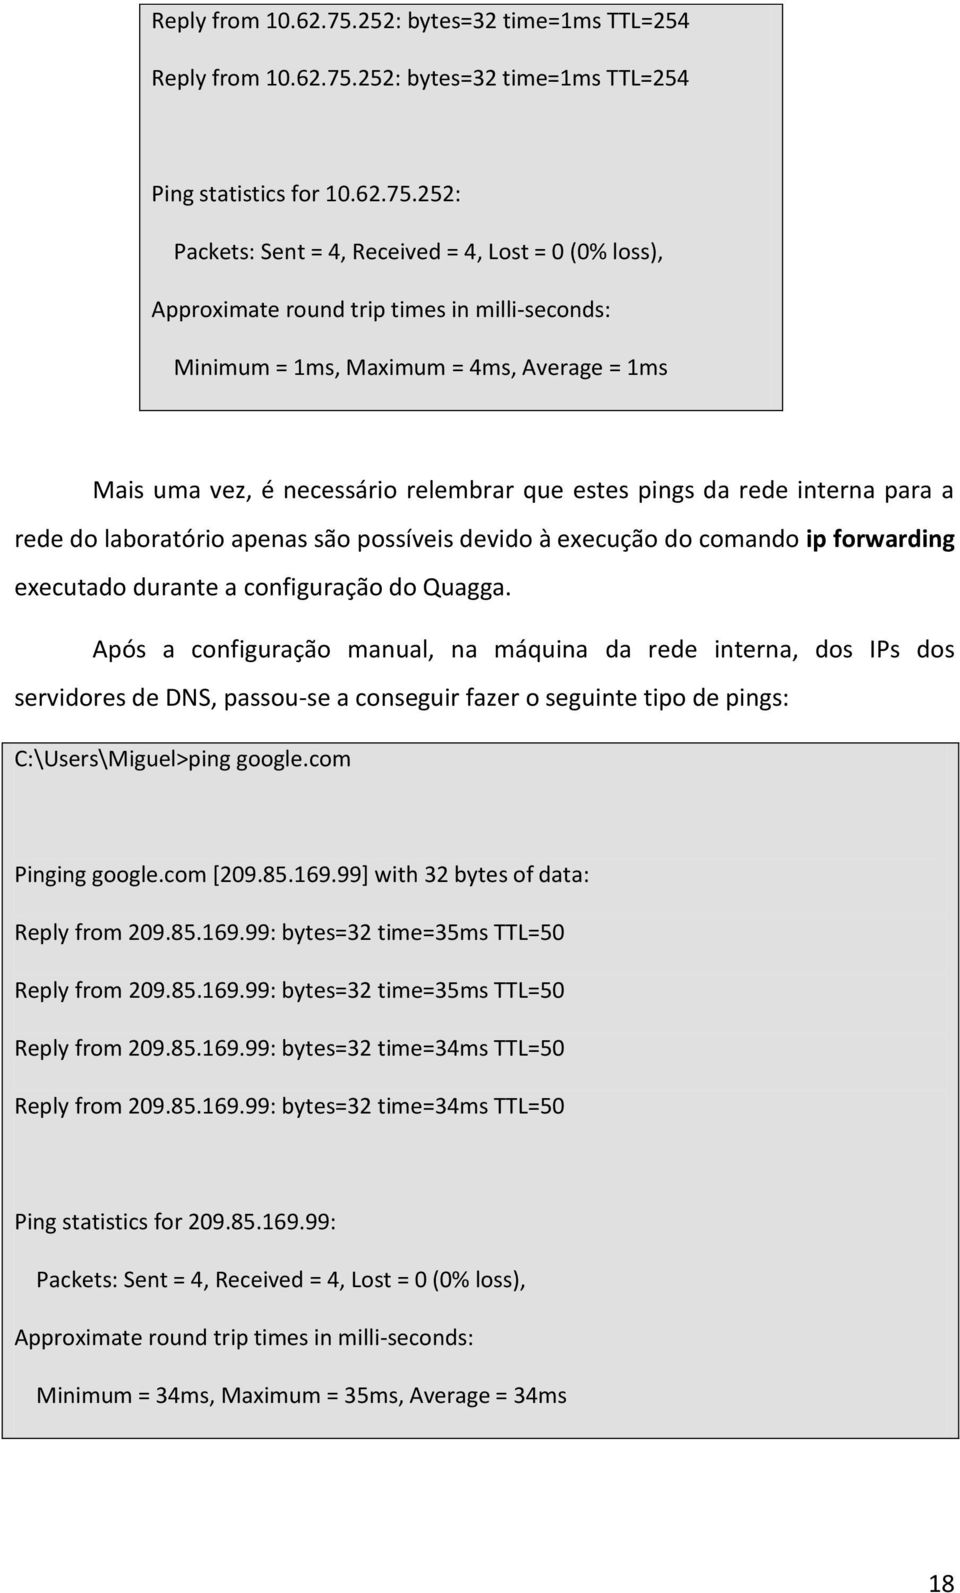 252: Packets: Sent = 4, Received = 4, Lost = 0 (0% loss), Approximate round trip times in milli-seconds: Minimum = 1ms, Maximum = 4ms, Average = 1ms Mais uma vez, é necessário relembrar que estes